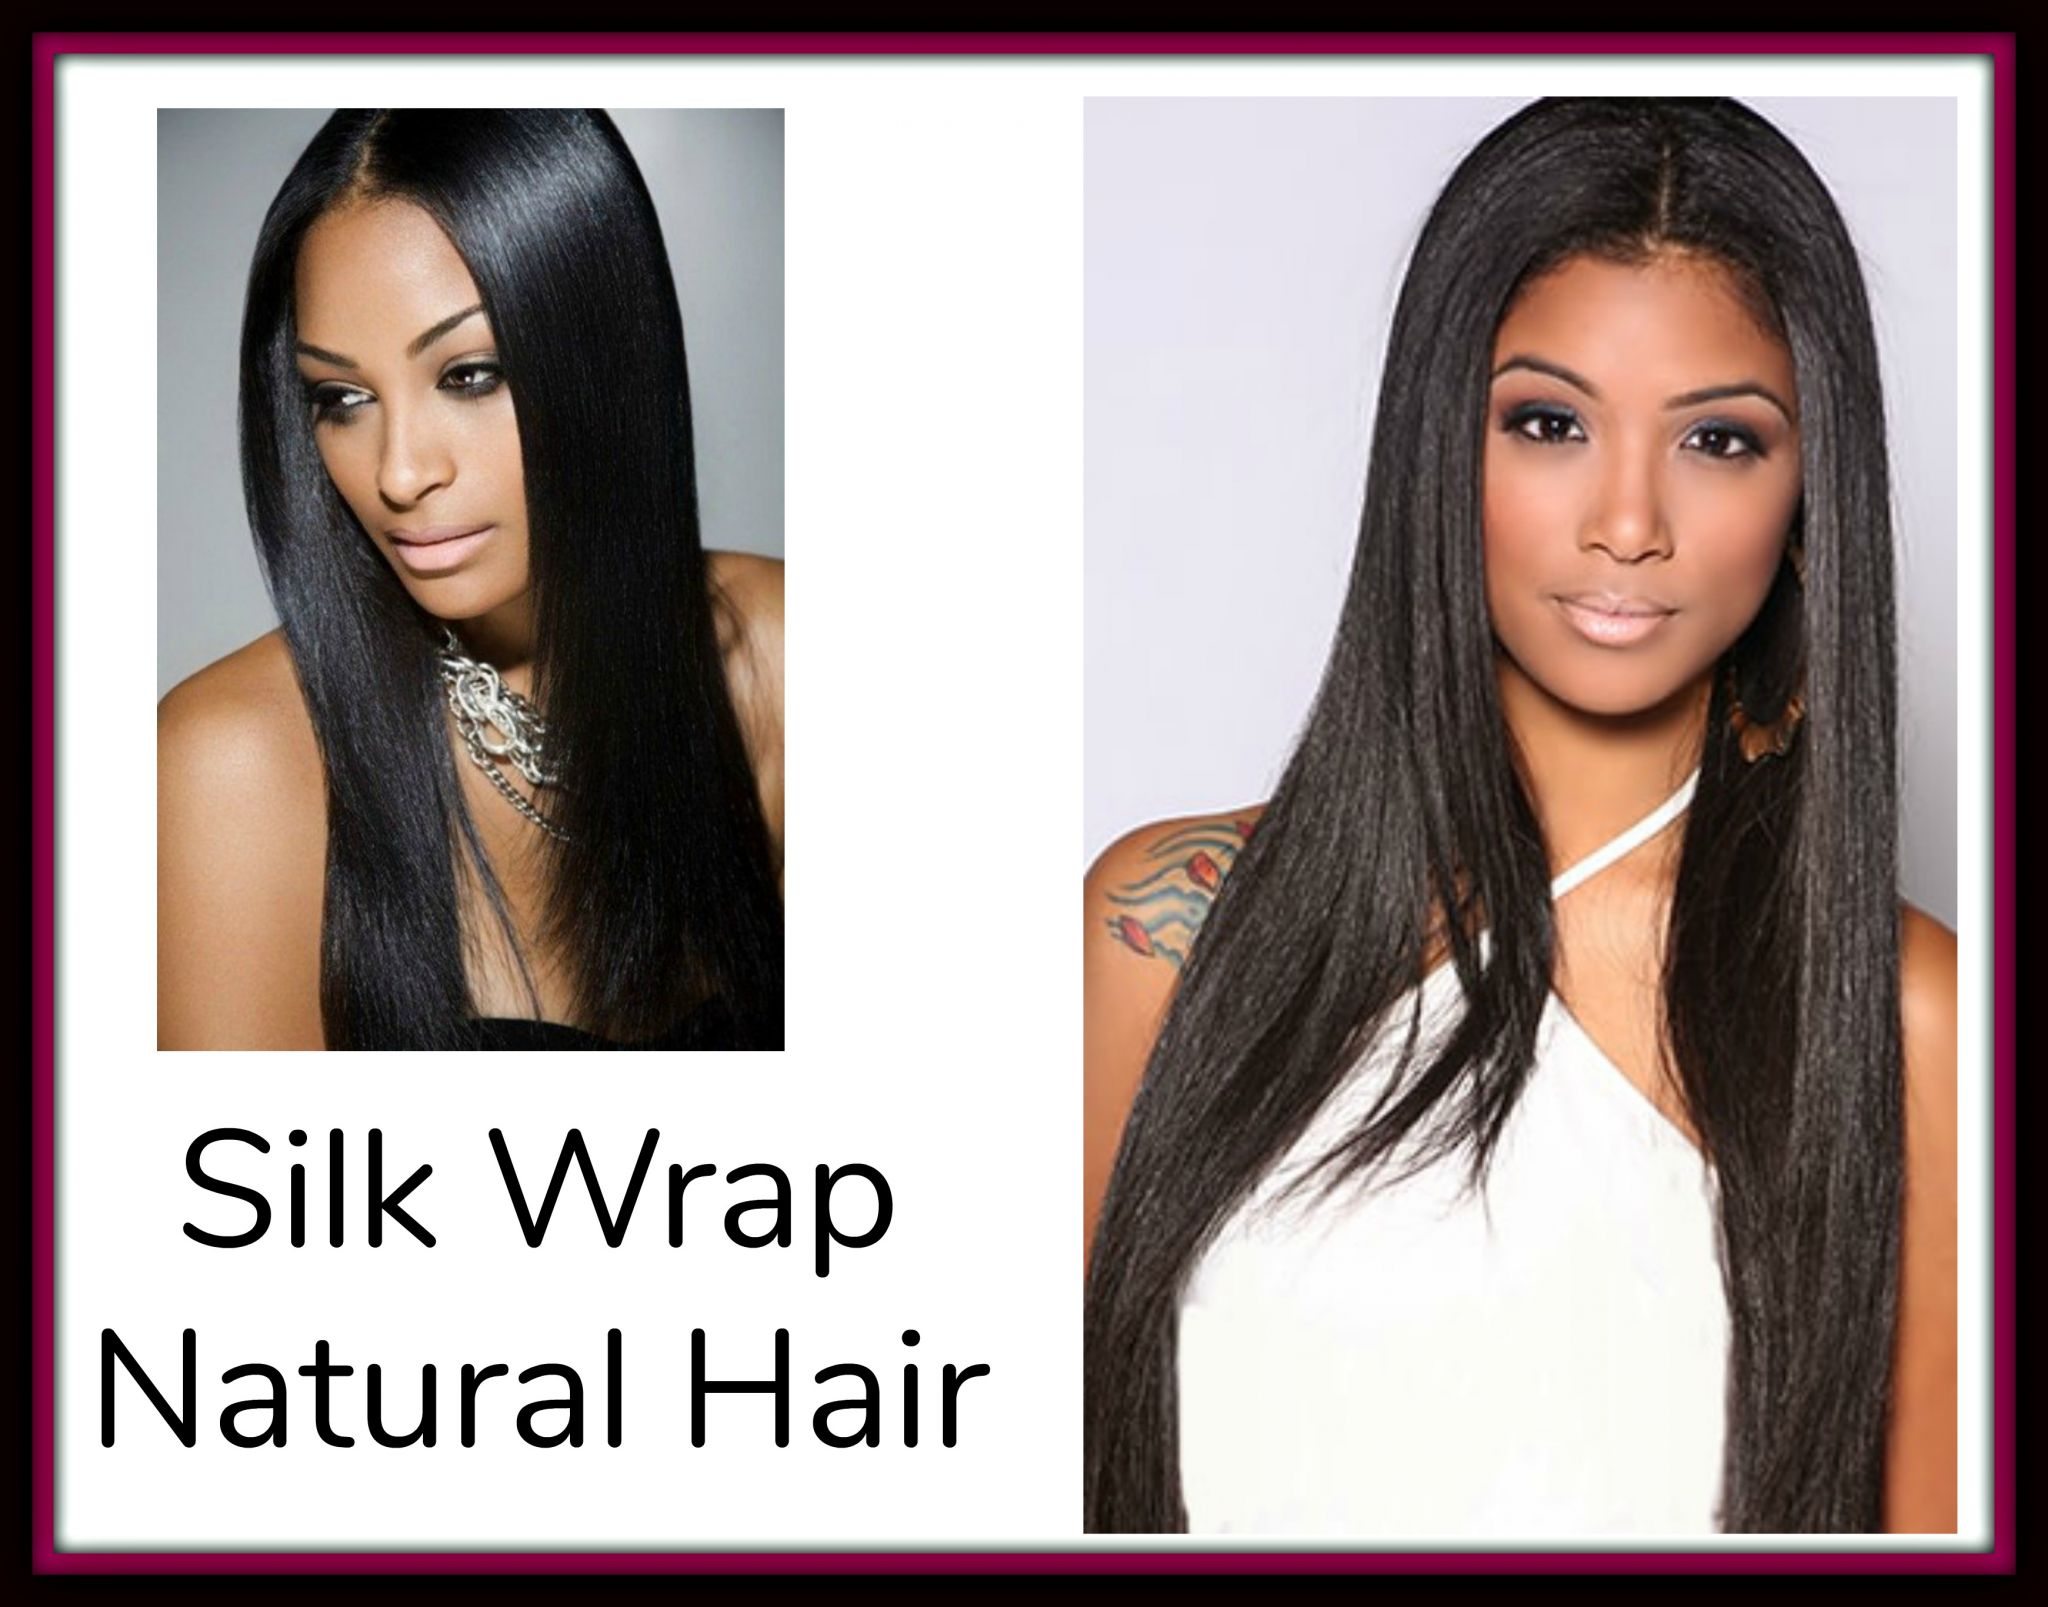 Silk Wrap Natural Hair What The Heck Is That Is It Healthy